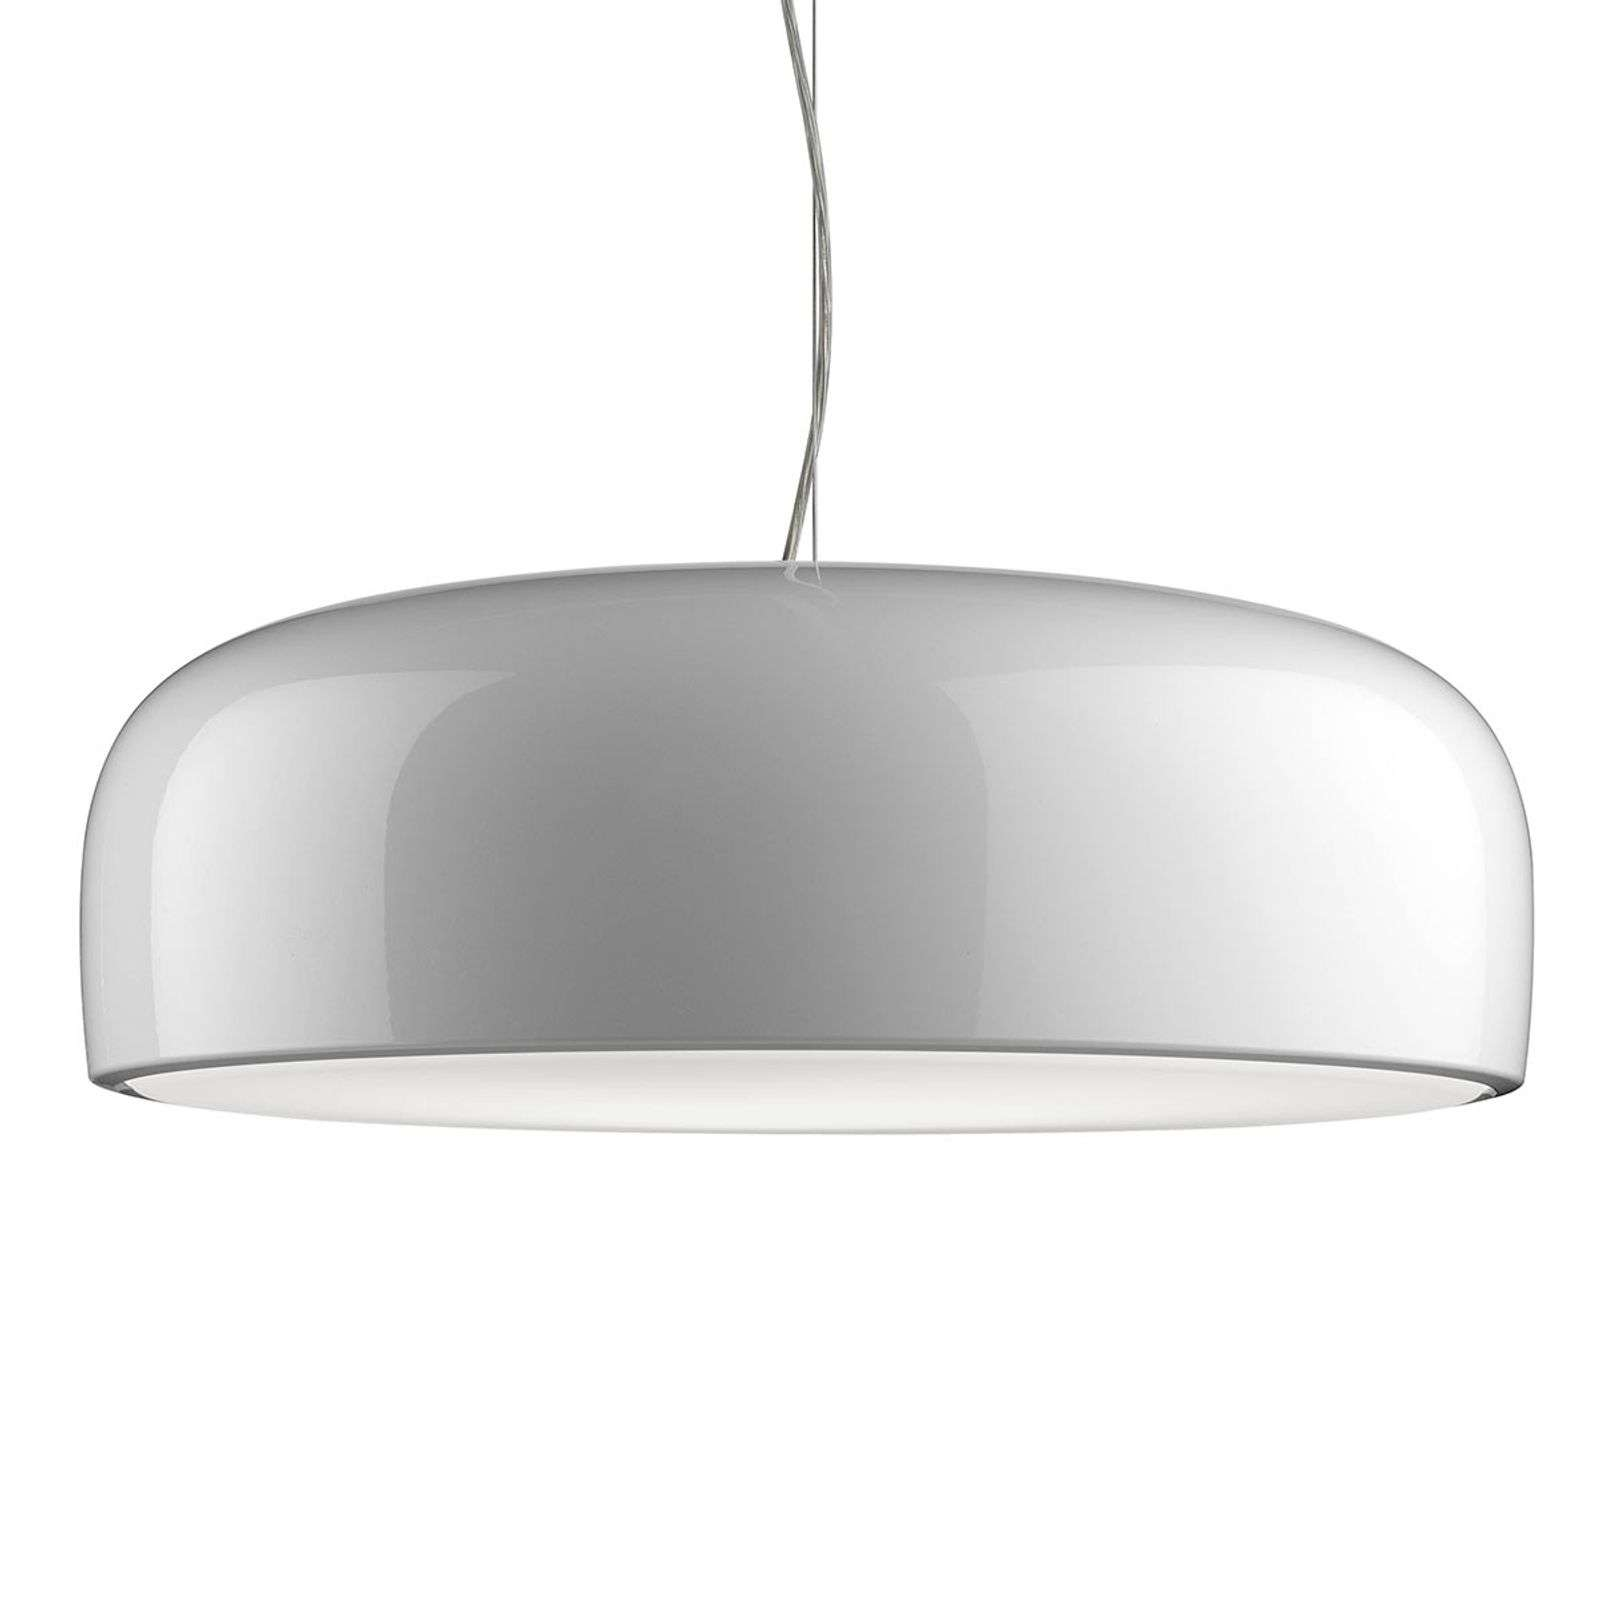 Suspension LED blanche Smithfield - Design by FLOS